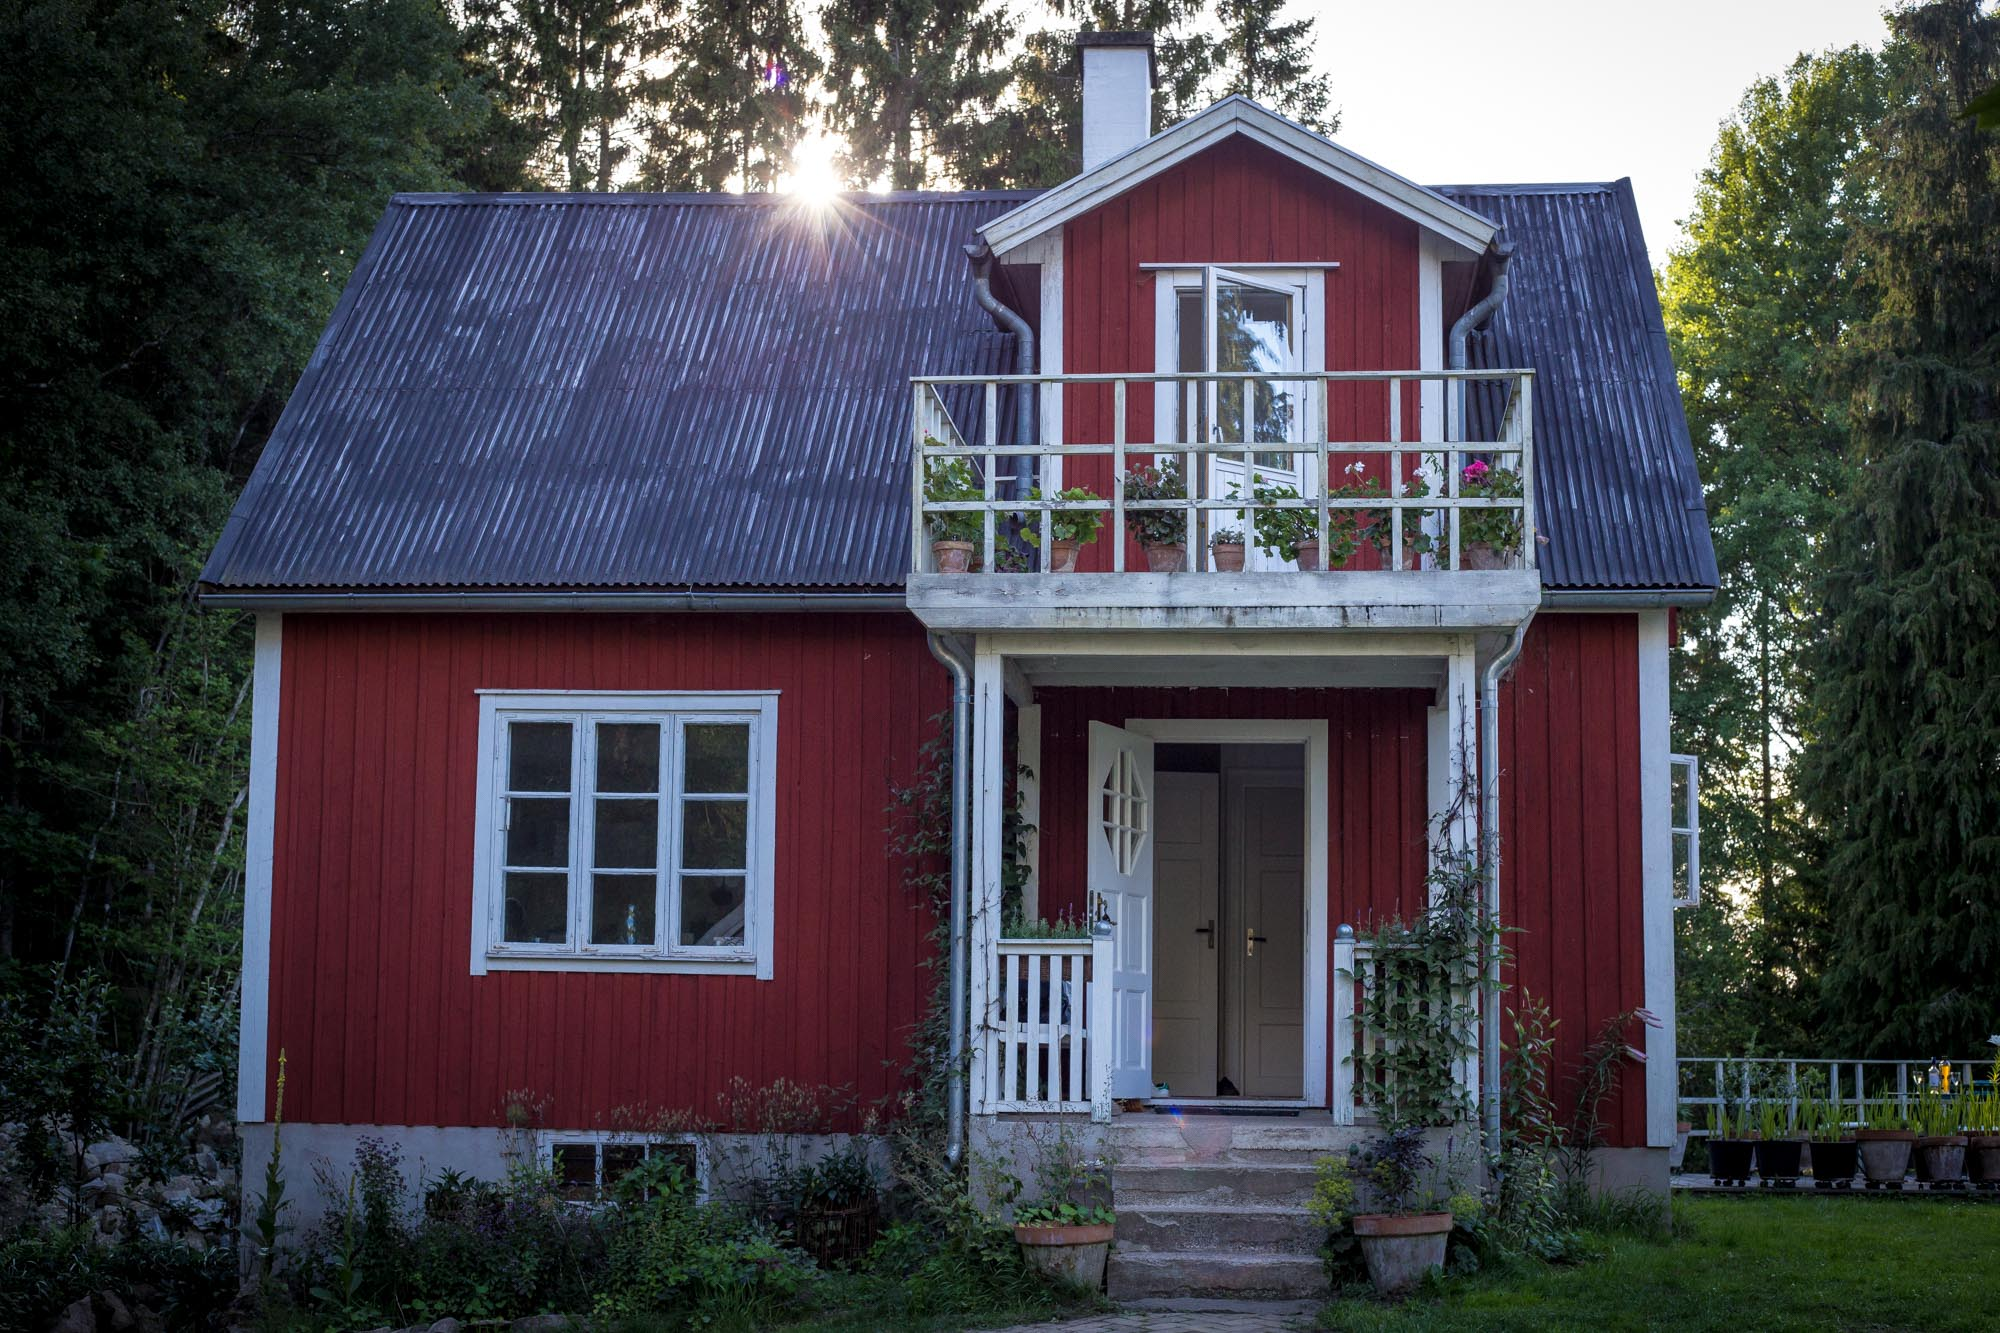 Our friends house in Bräkne-Hoby, Sweden.